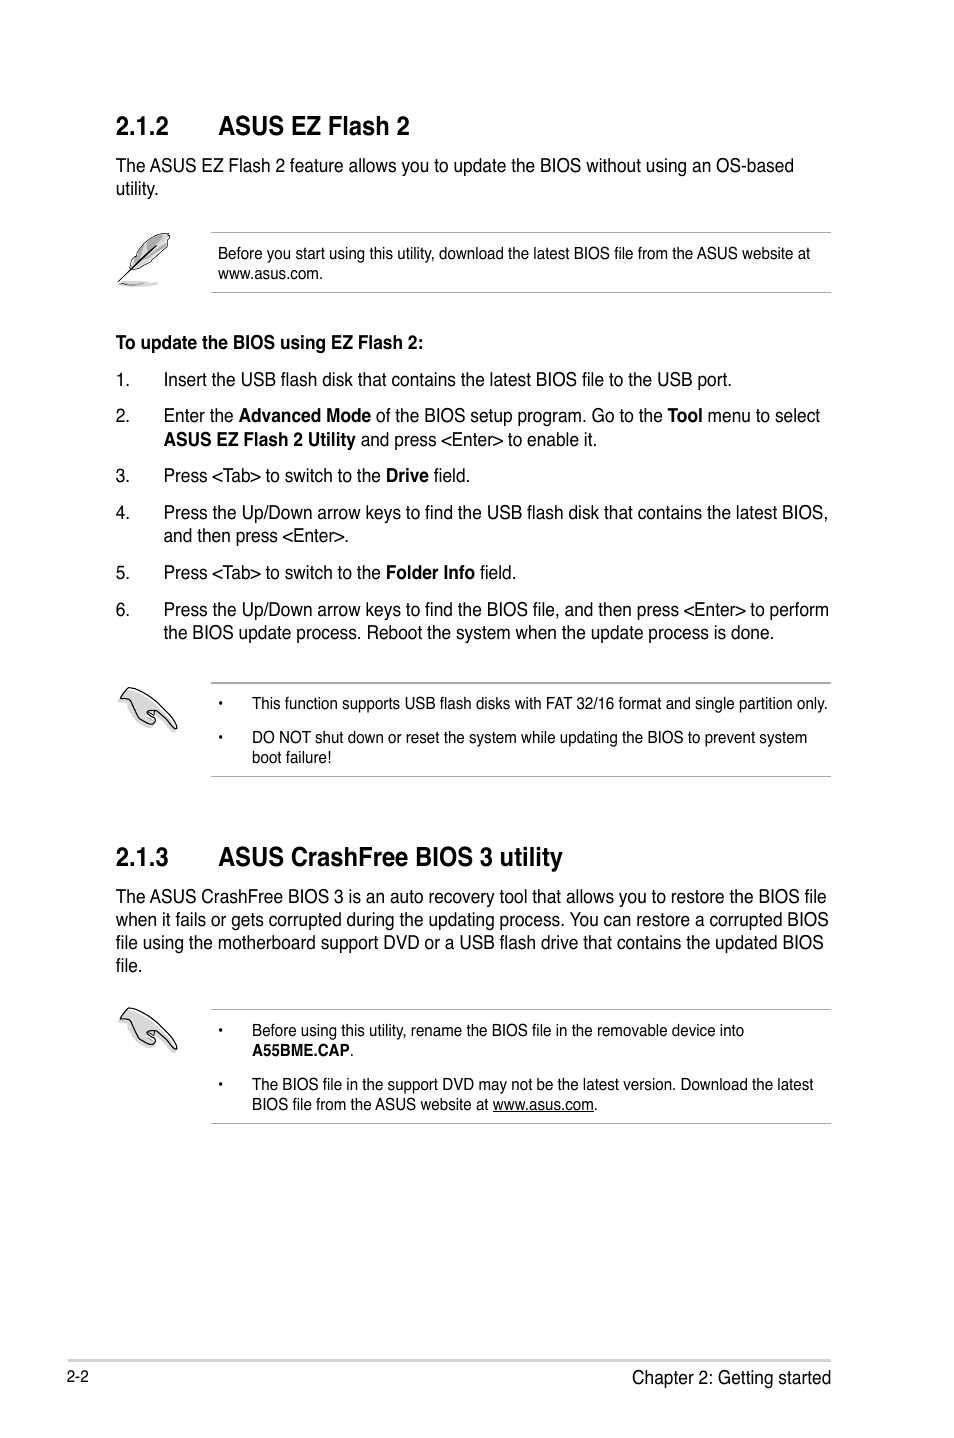 Asus easy flash utility recovery | Asus Easy Flash Utility Usb  2019